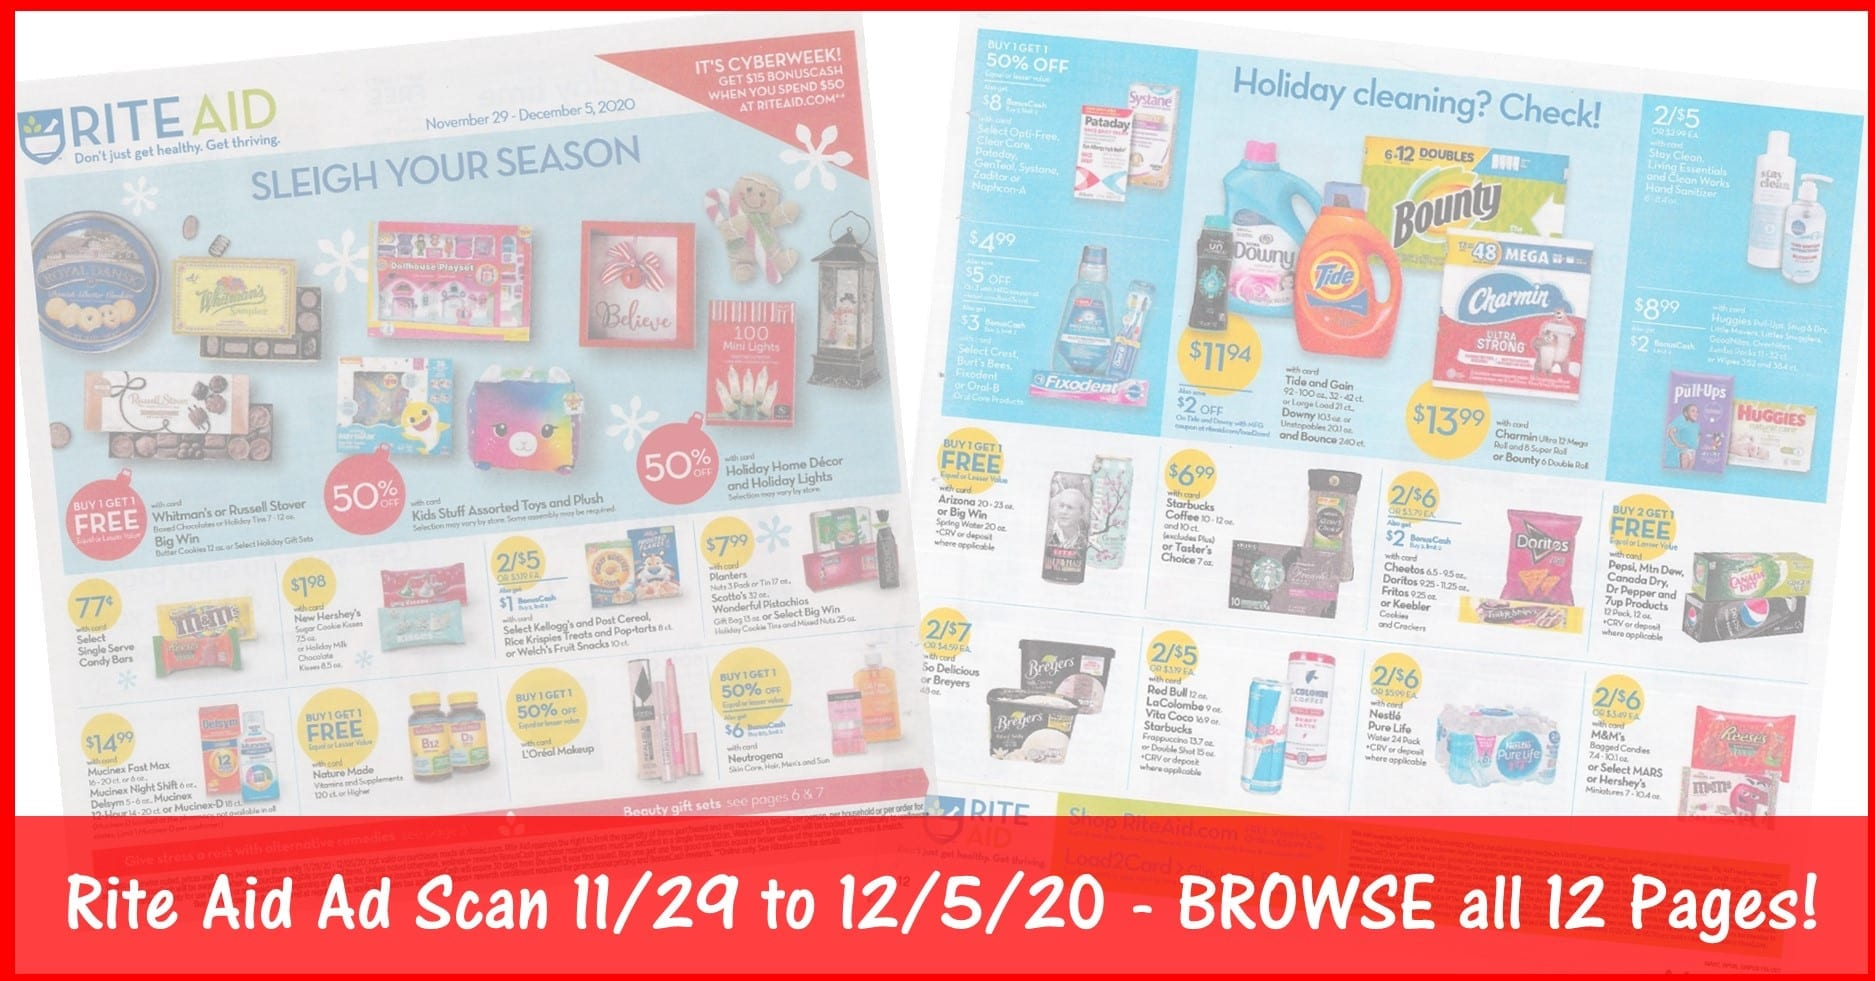 Rite Aid Weekly Ad (11/29/20 - 12/5/20): Early Rite Aid Ad Preview